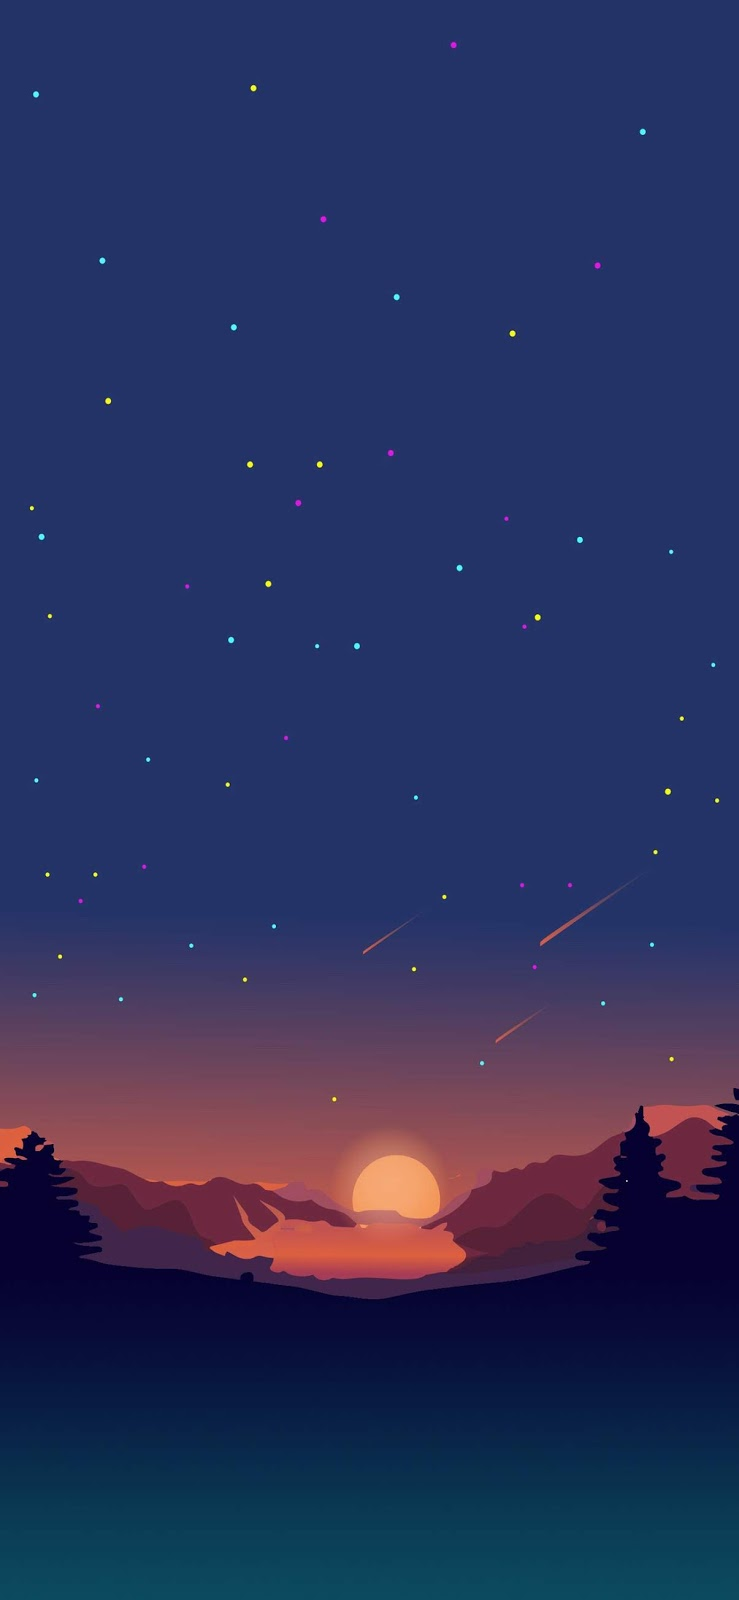 Sunset Digital art Mobile wallpaper | Minimalist - HD ...